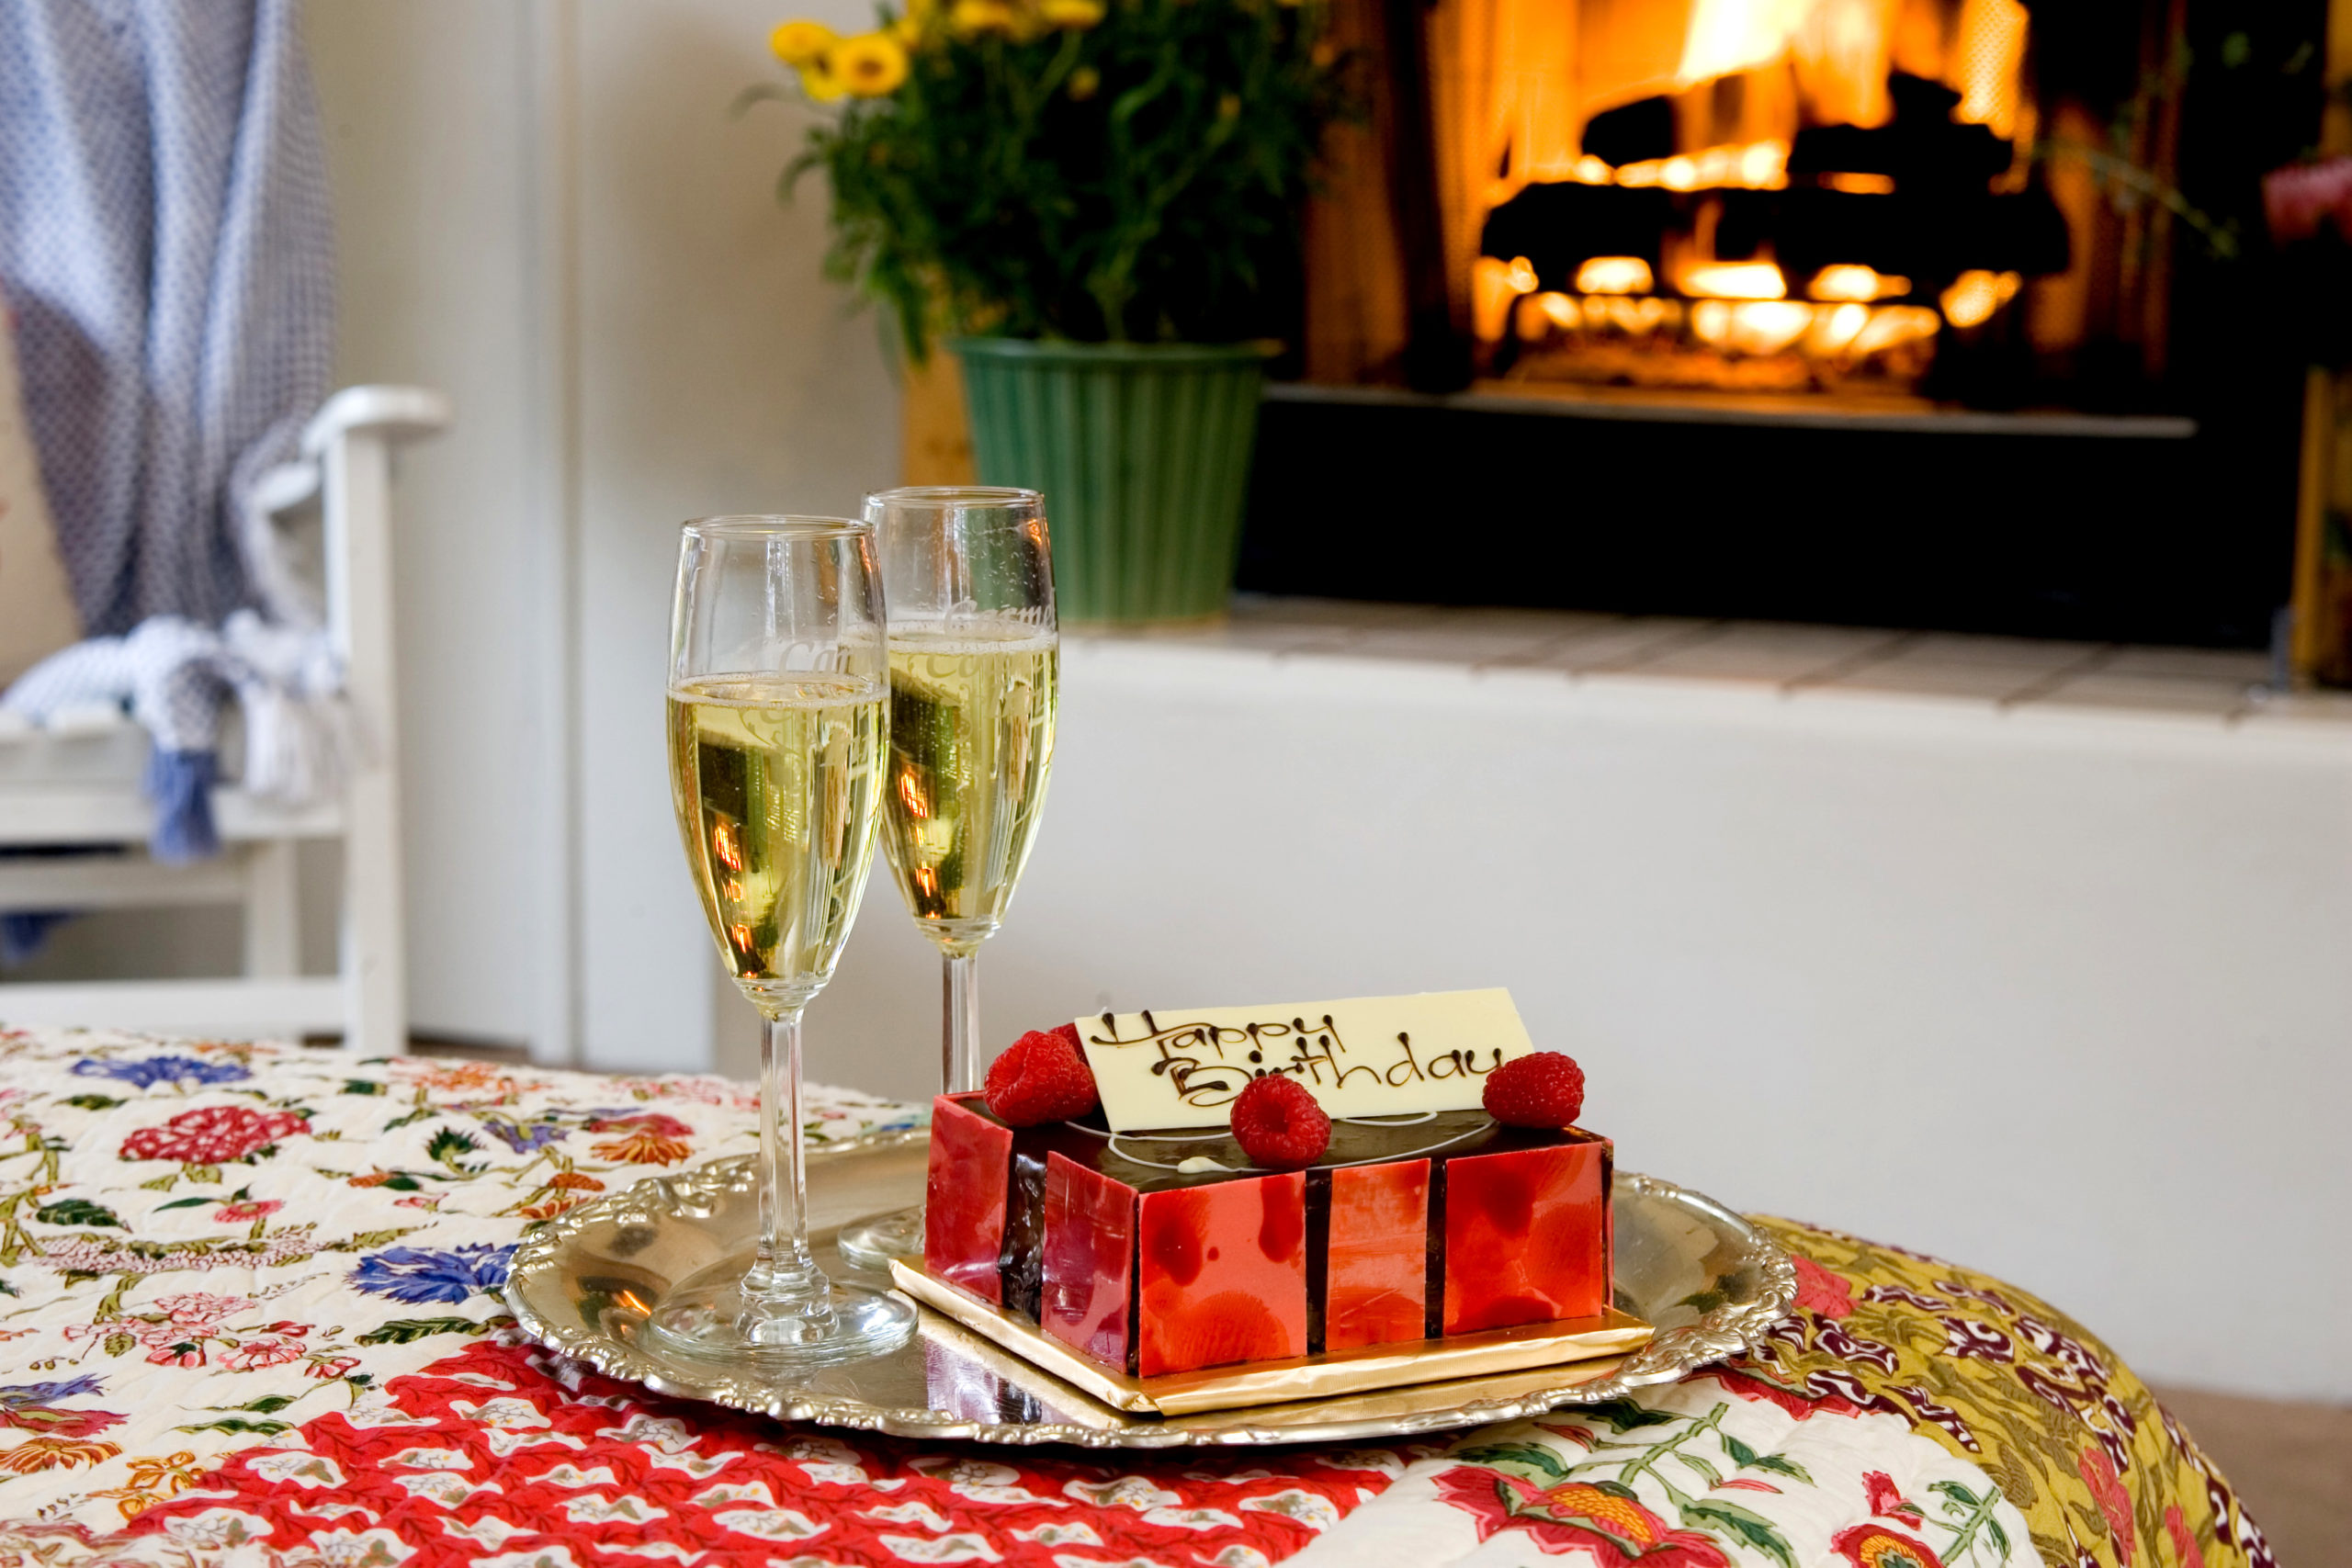 Sparkling Cider and personalized cake for two